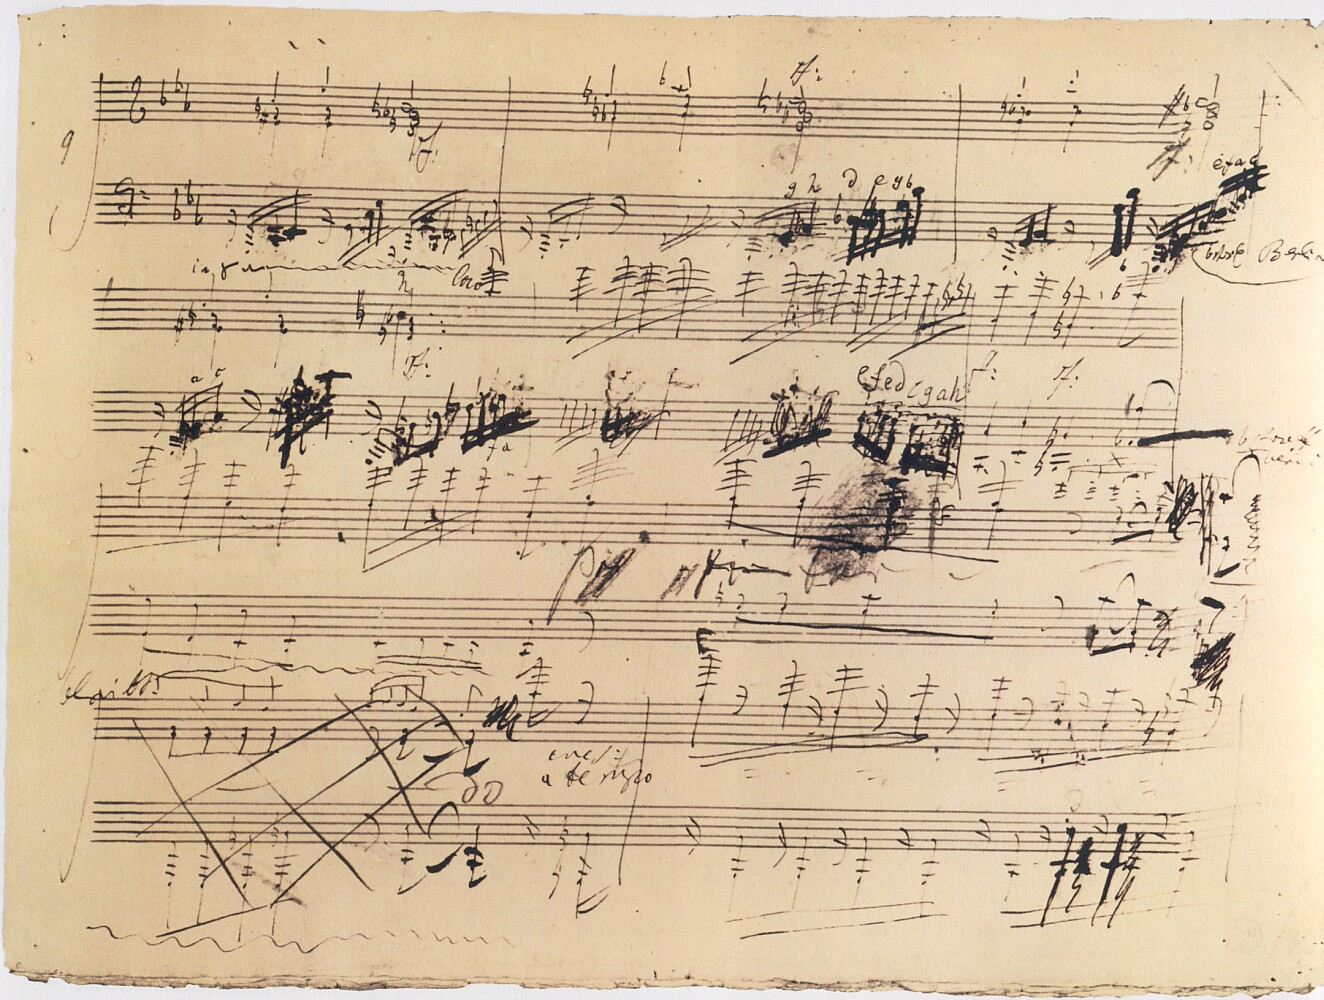 Drawn music notes handwritten Mozart handwritten Calligraphy Search sheet